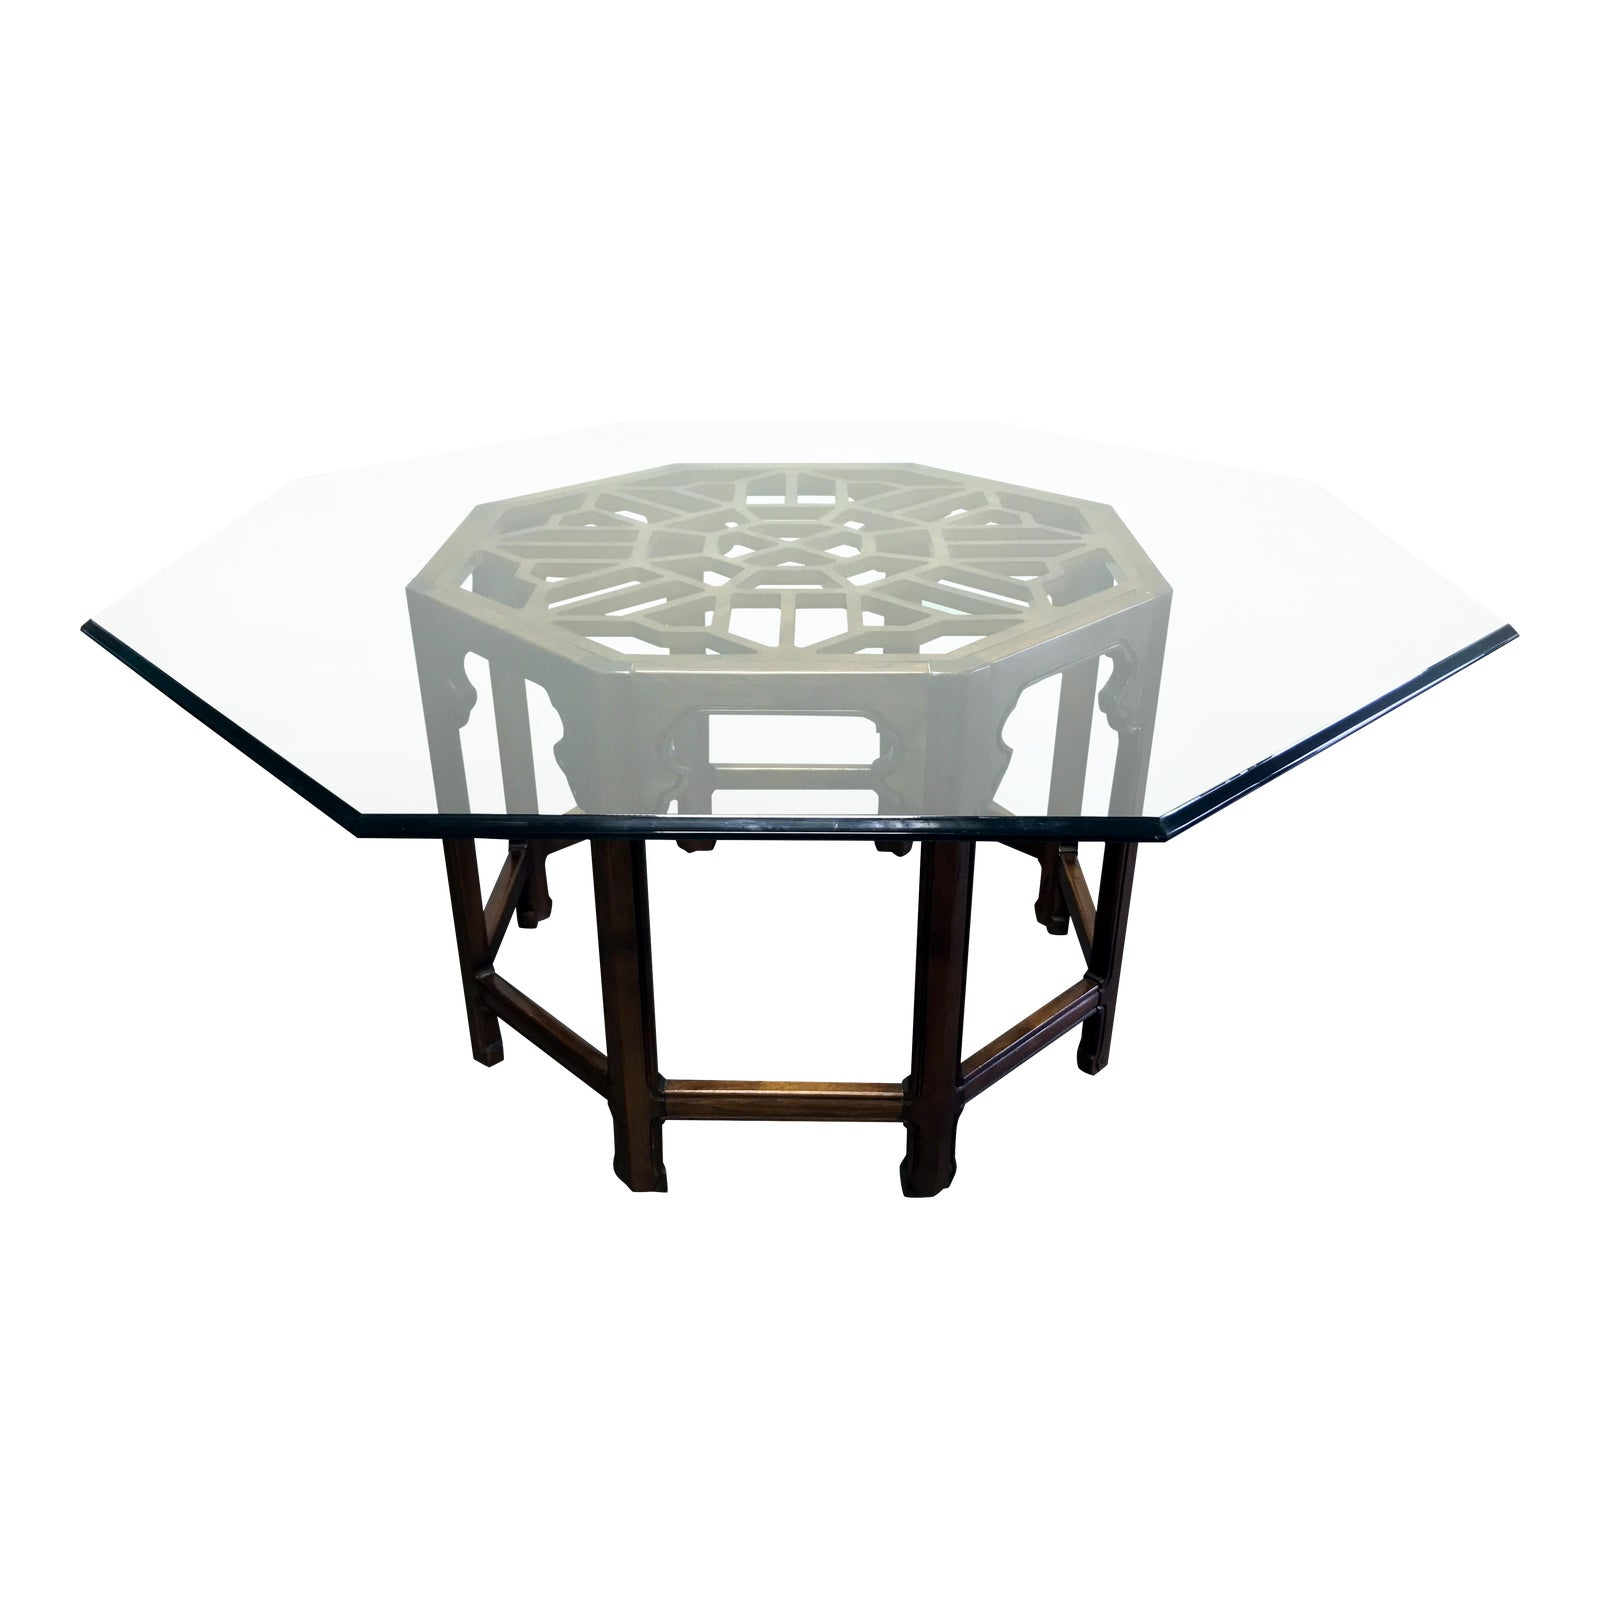 Thomasville Mystique Asian Chinoiserie Octagonal Glass Top Dining Table -